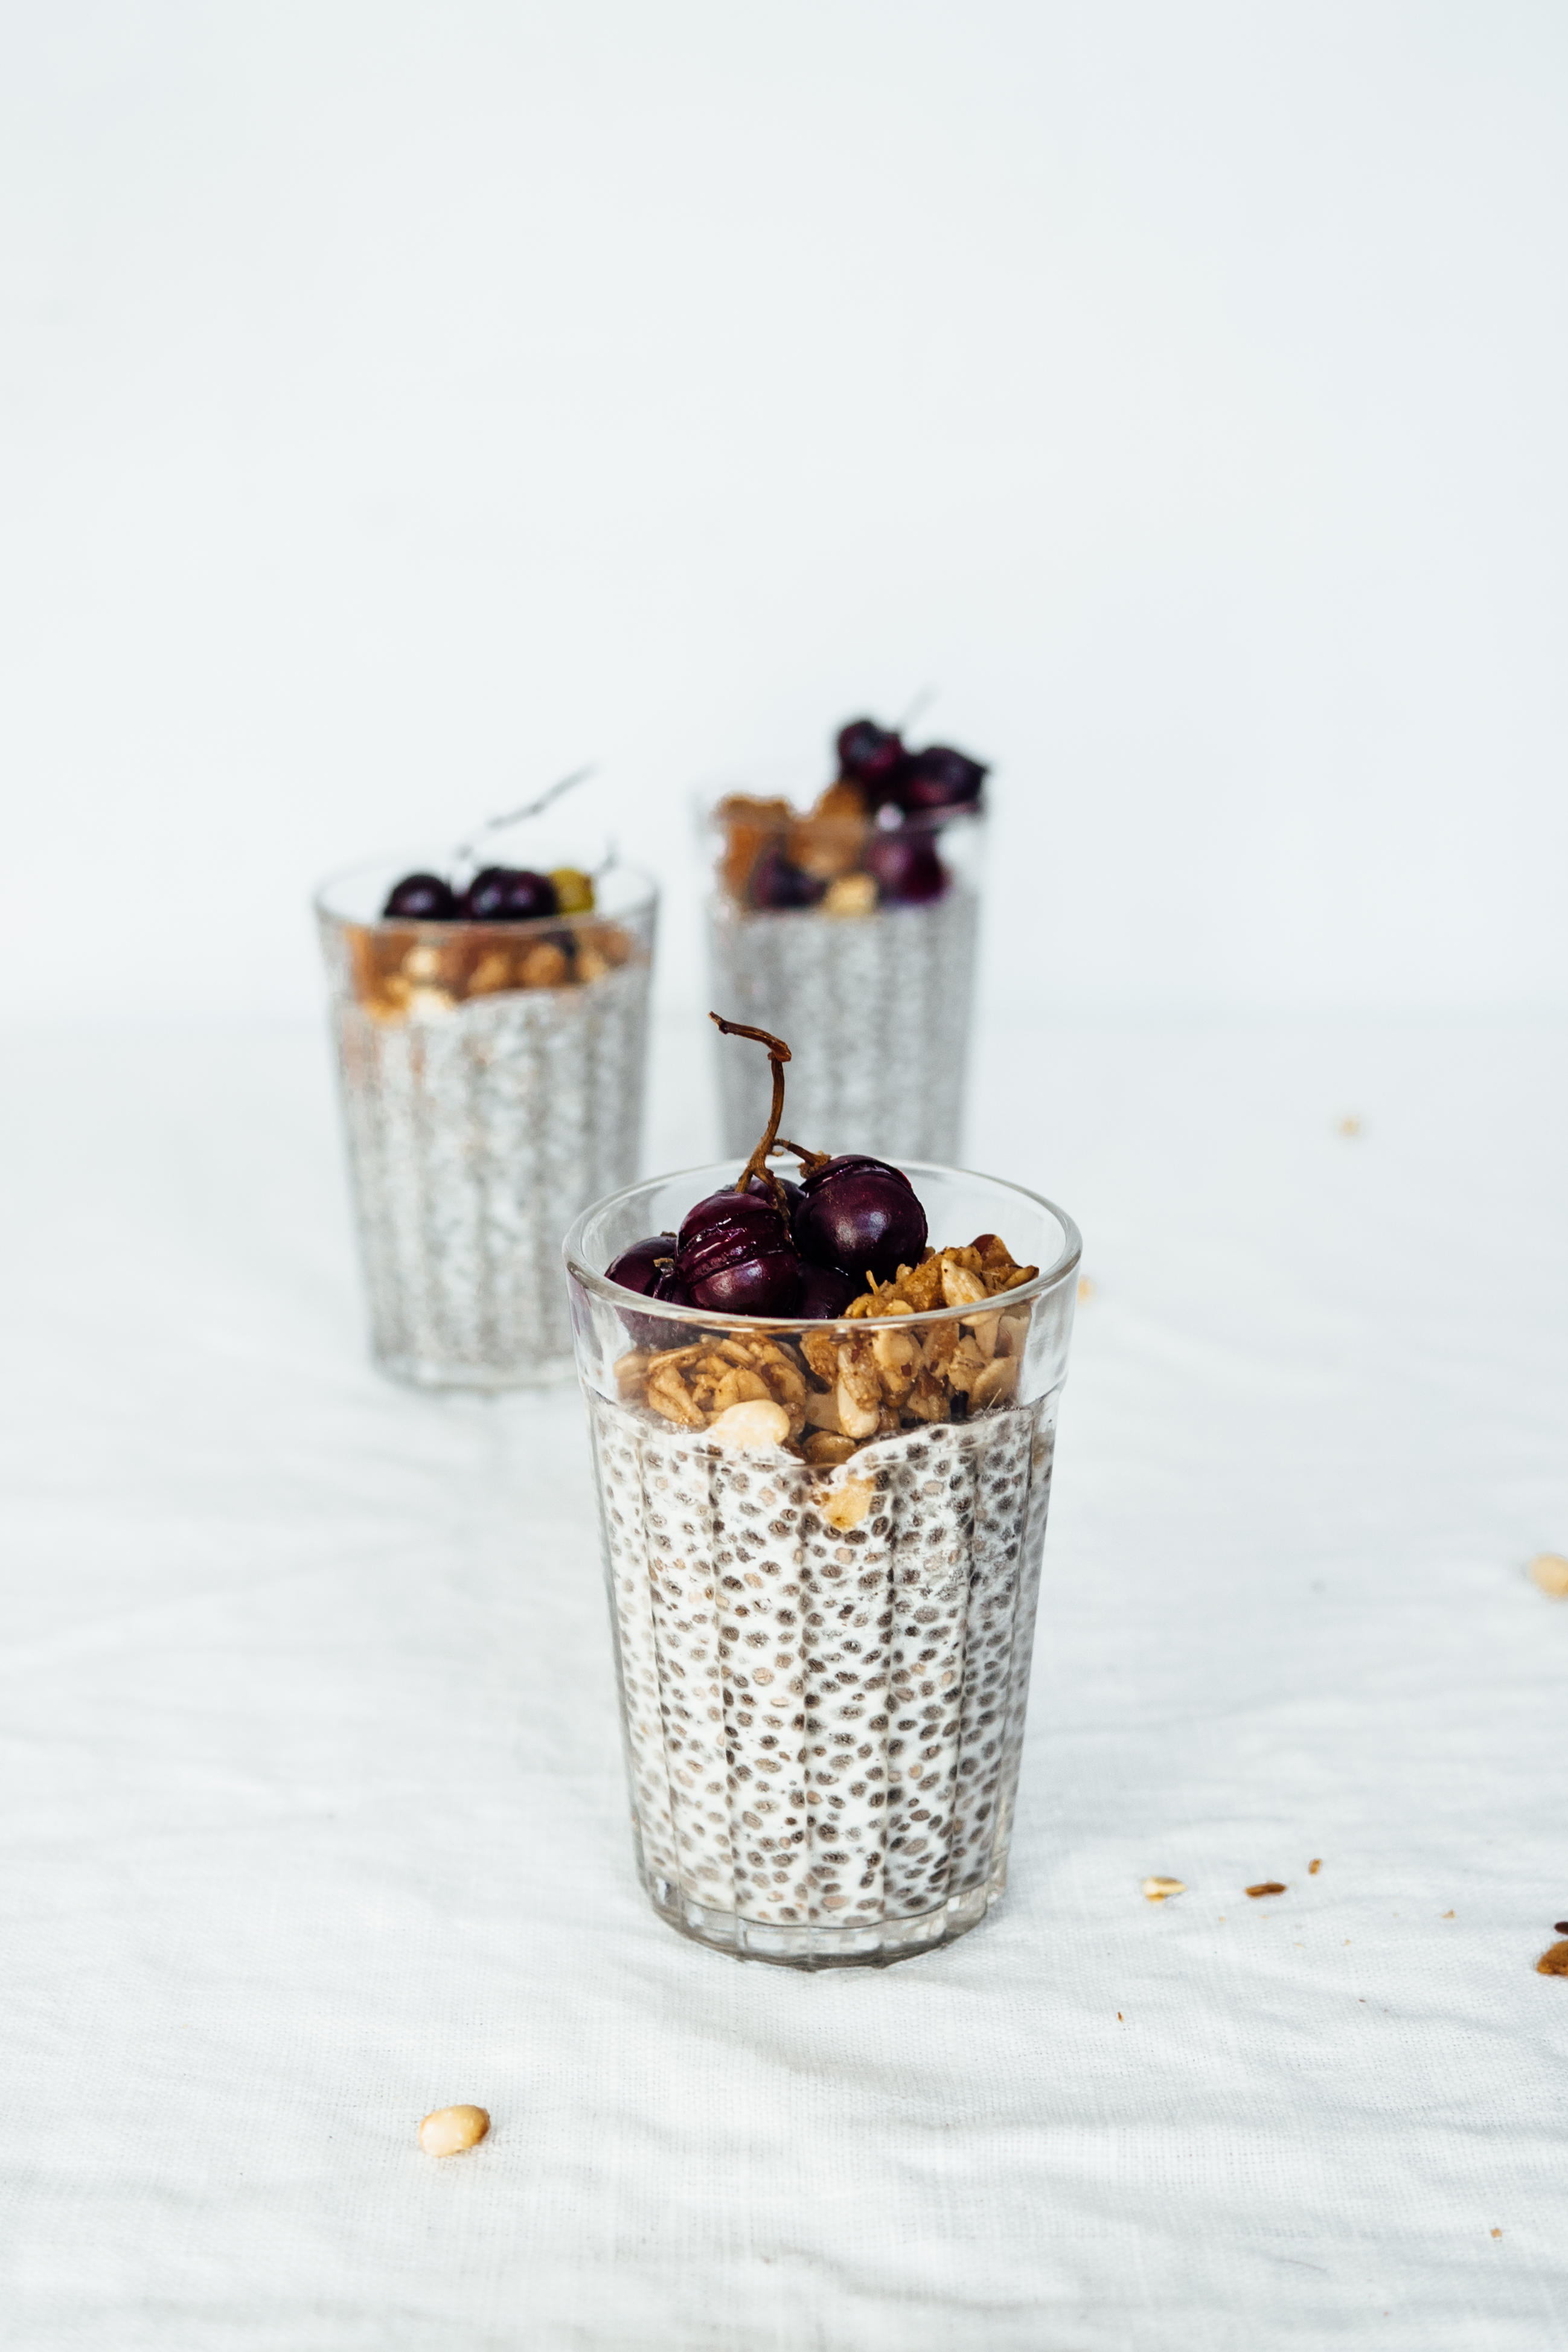 Almond Chia Pudding with Roasted Grapes | TENDING the TABLE